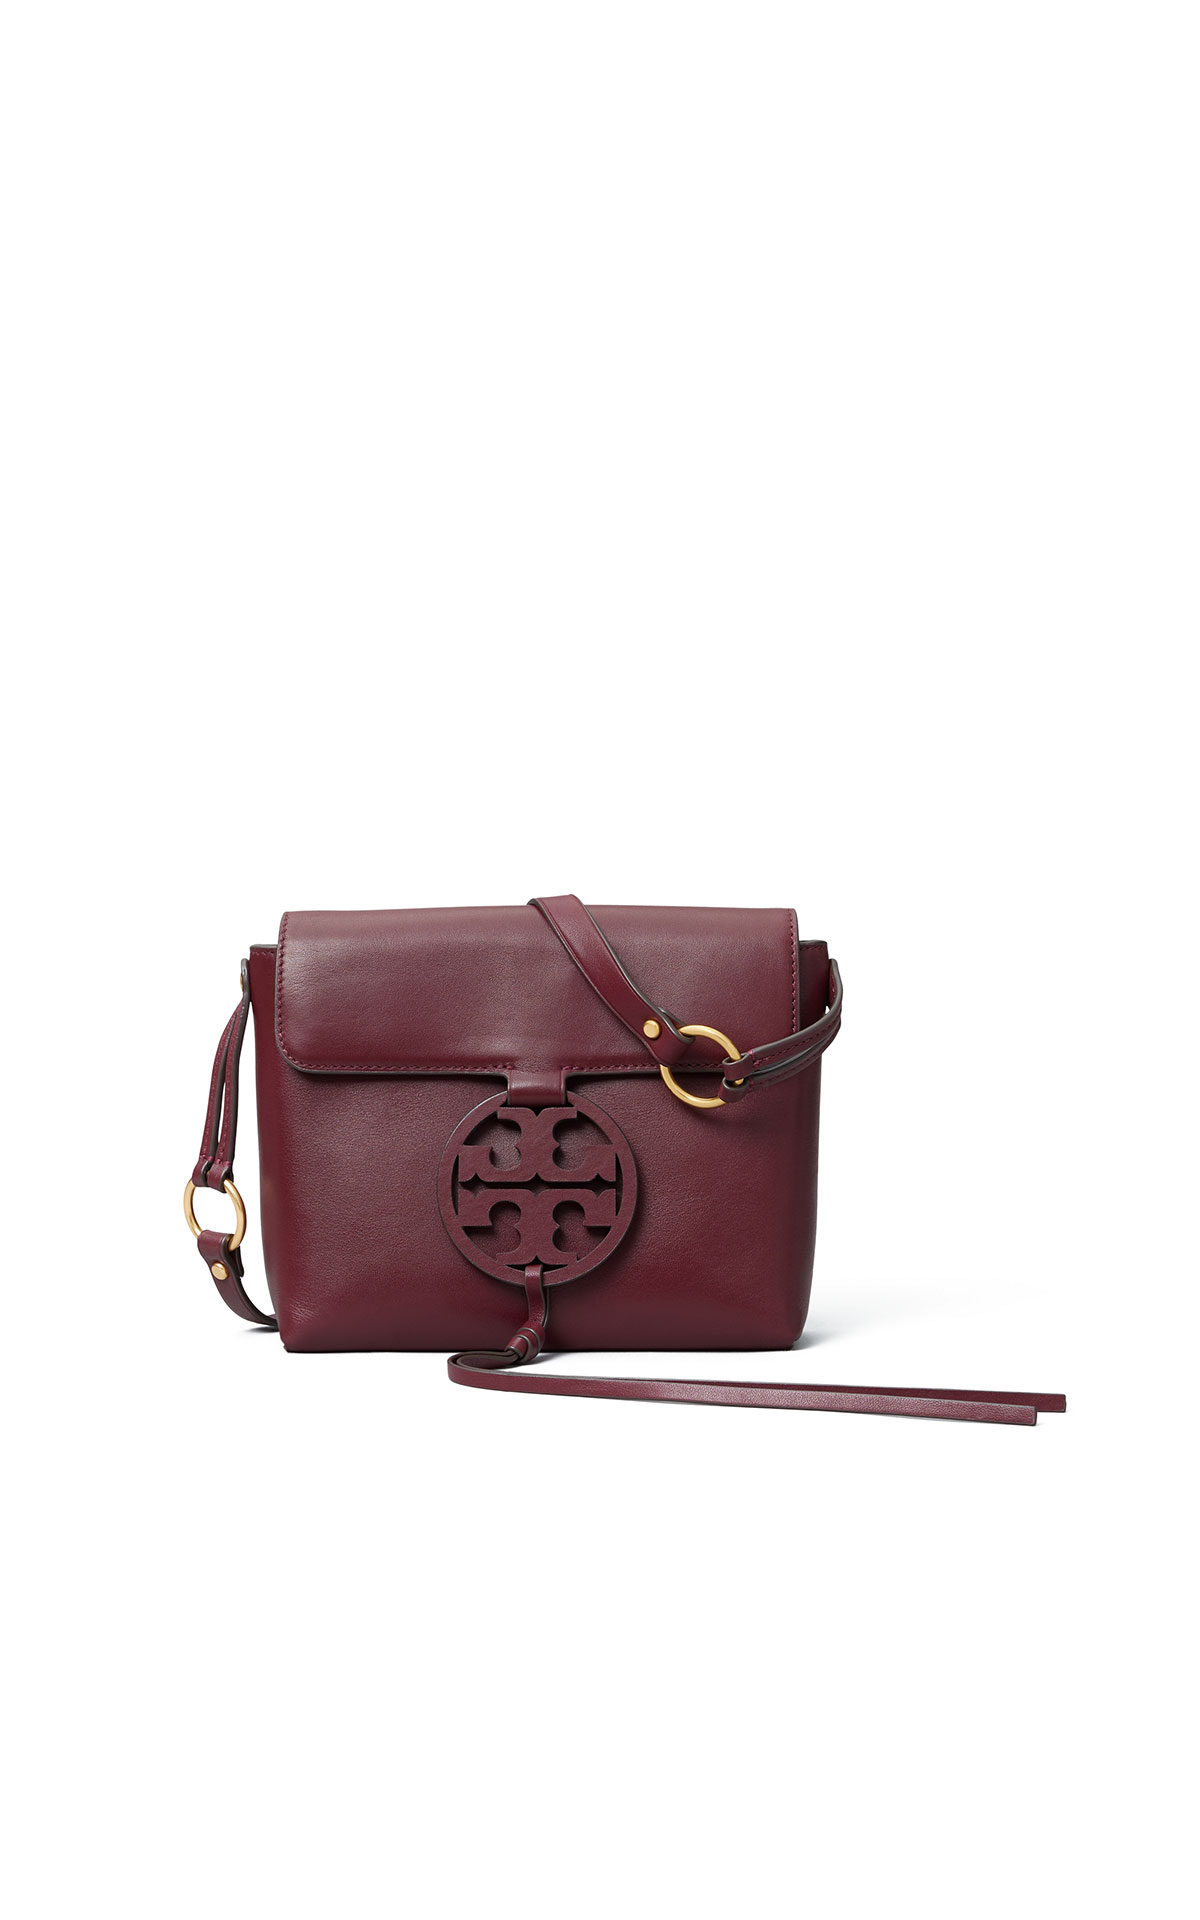 Tory Burch Miller crossbody bag from Bicester Village